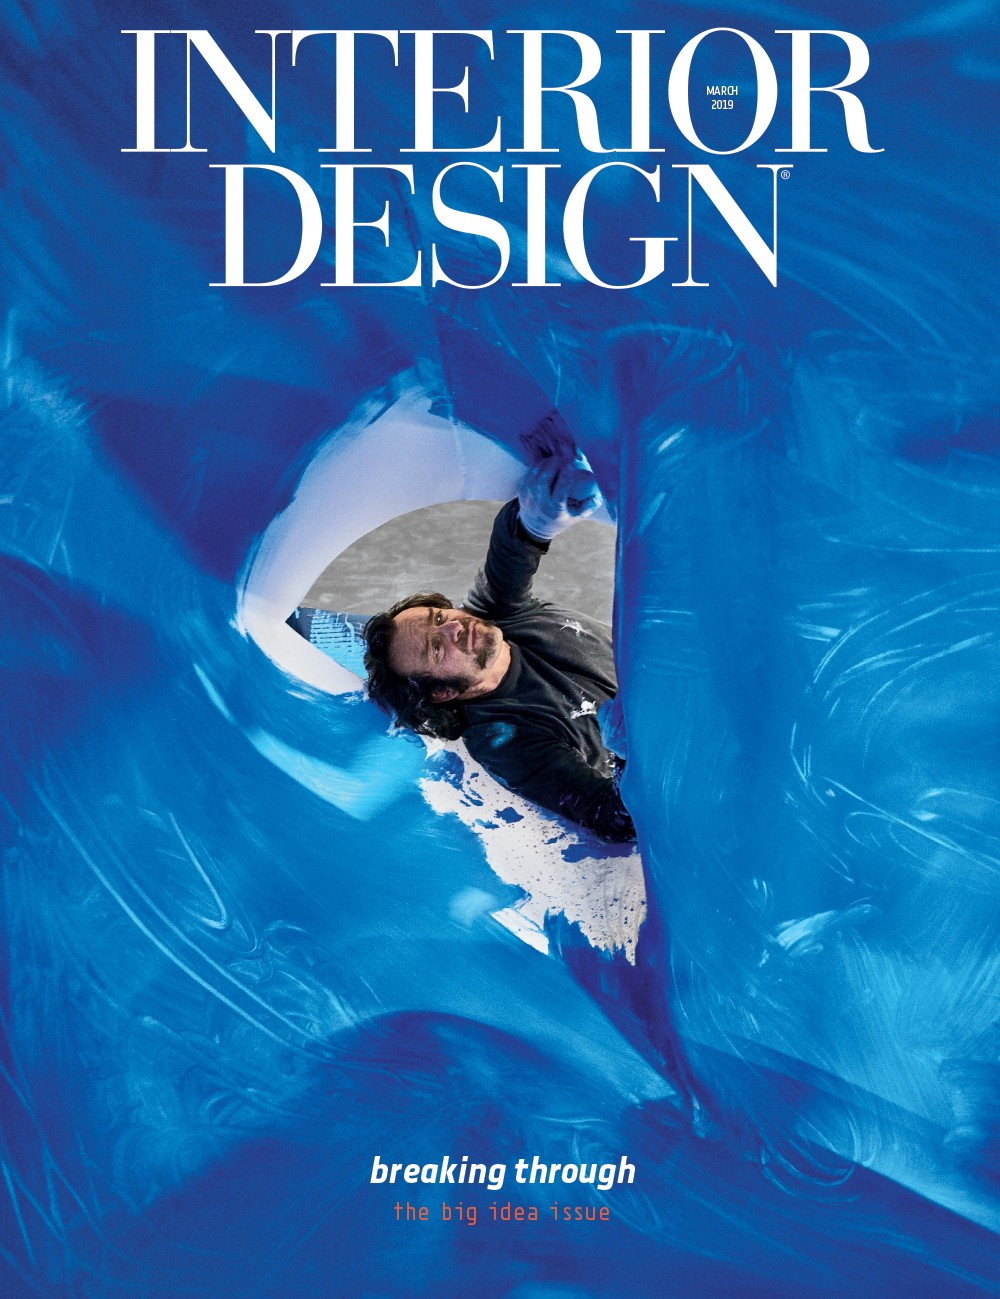 Discover the Best Interior Design Magazines To Follow On Pinterest interior design magazines Discover the Best Interior Design Magazines To Follow On Pinterest Discover the Best Interior Design Magazines To Follow On Pinterest 5